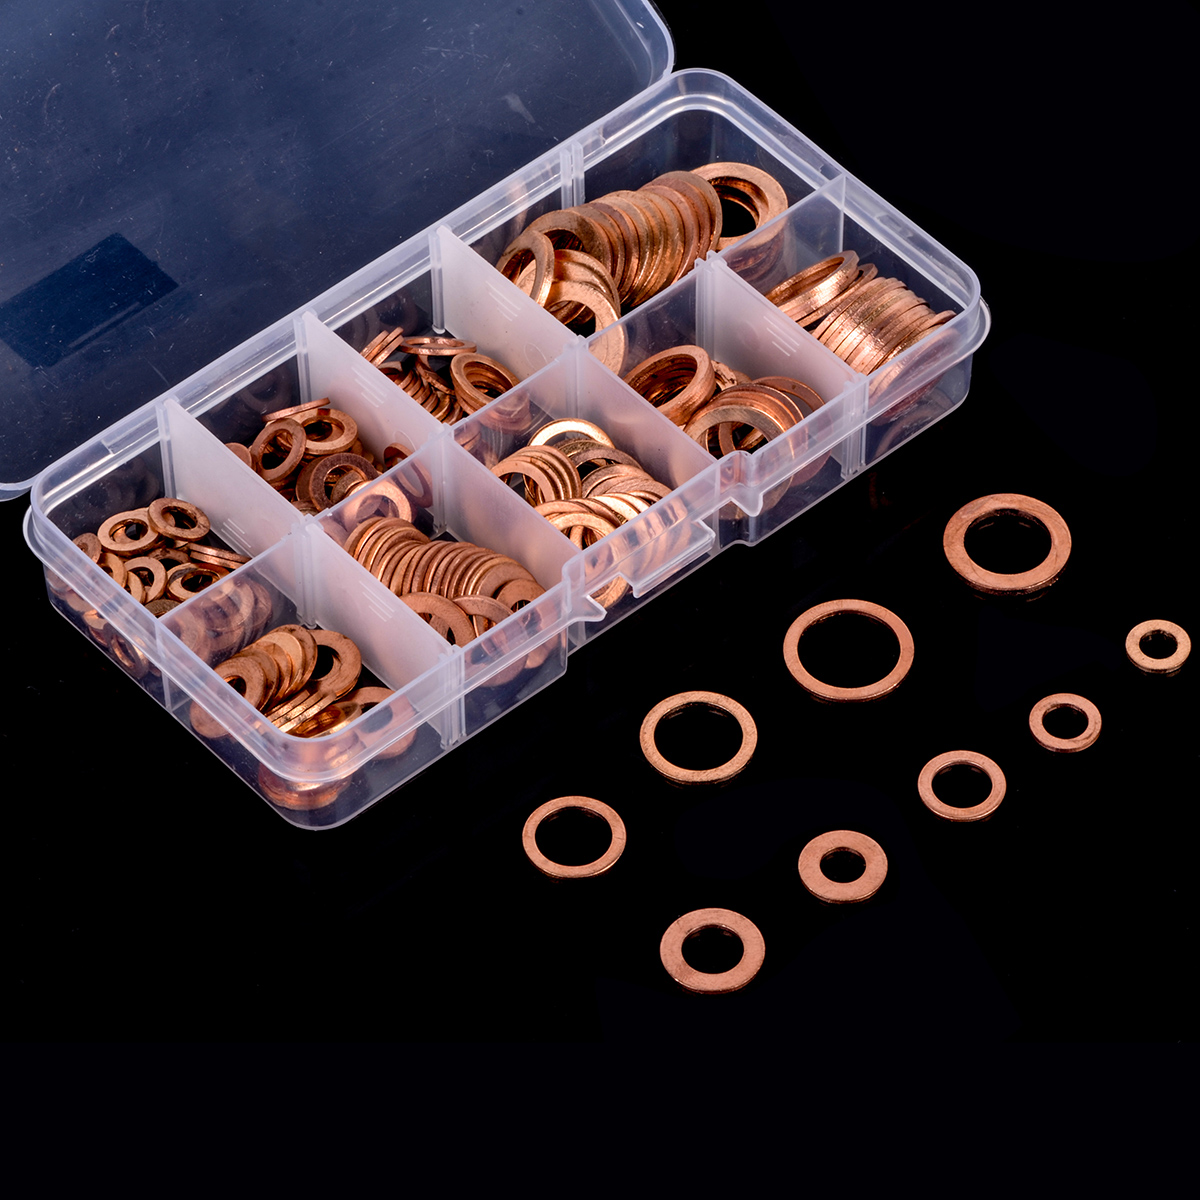 200pcs Solid Copper Washer Gasket Set Flat Ring Sump Plug Oil Seal Fittings Washers Fastener Hardware Accessories M5-M14